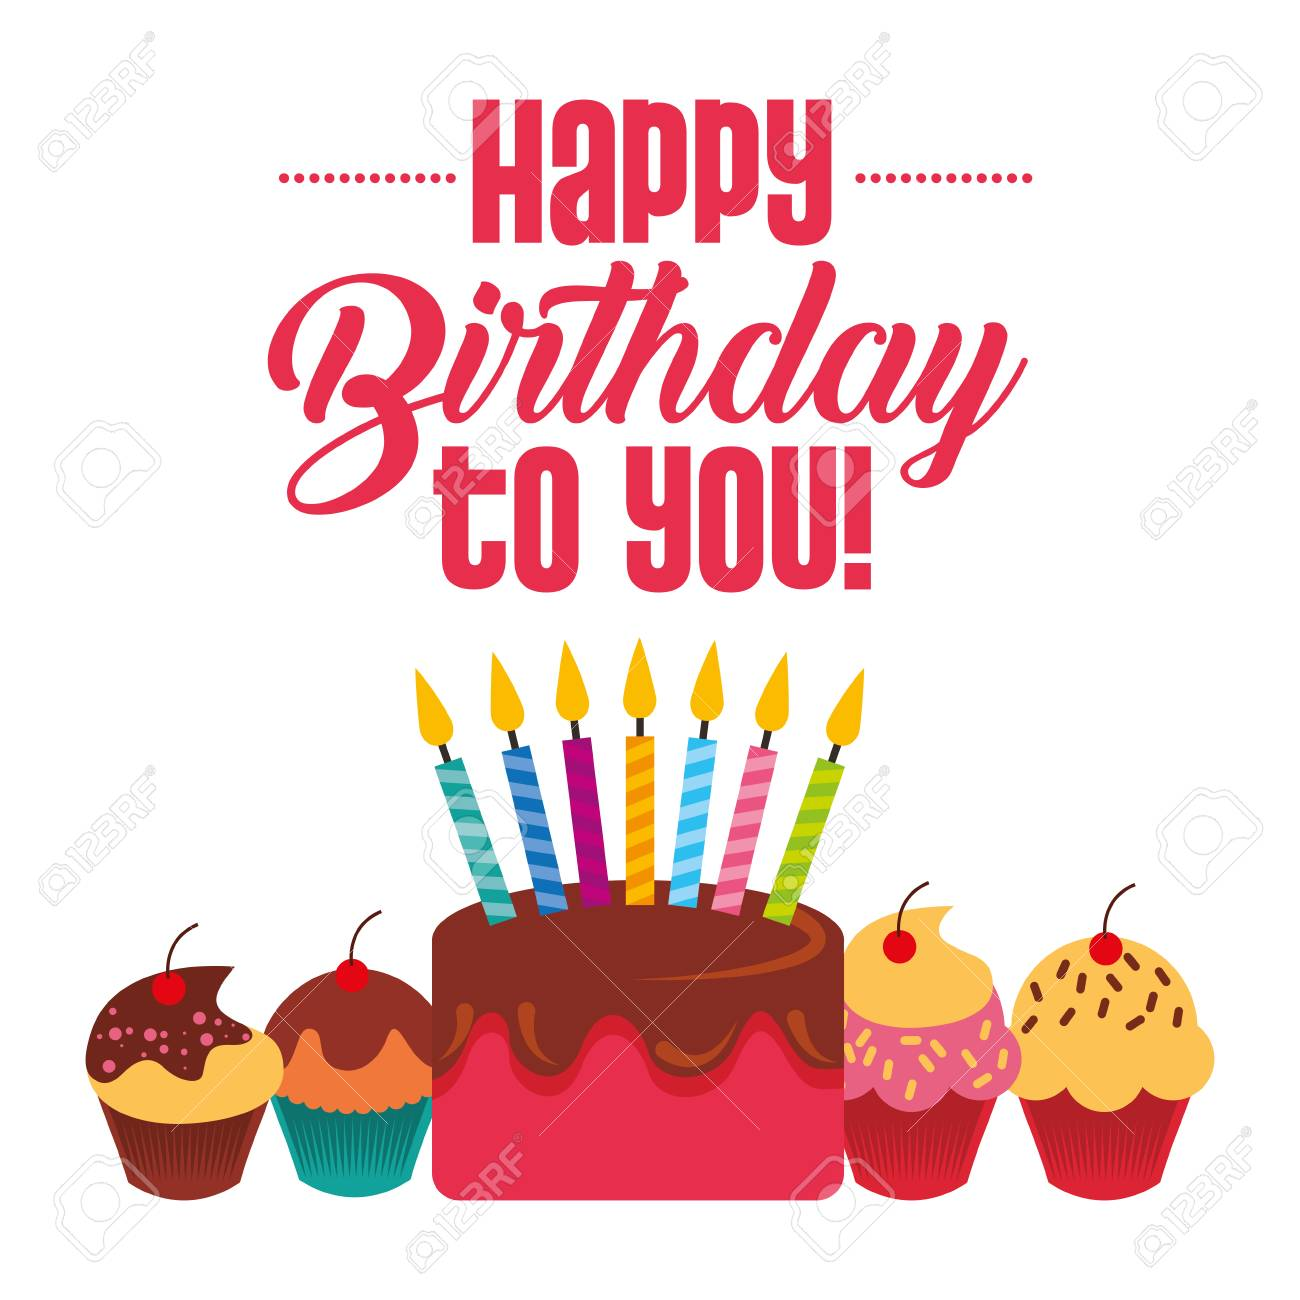 happy birthday to you cake cupckae with candles celebration card vector illustration - 97336547